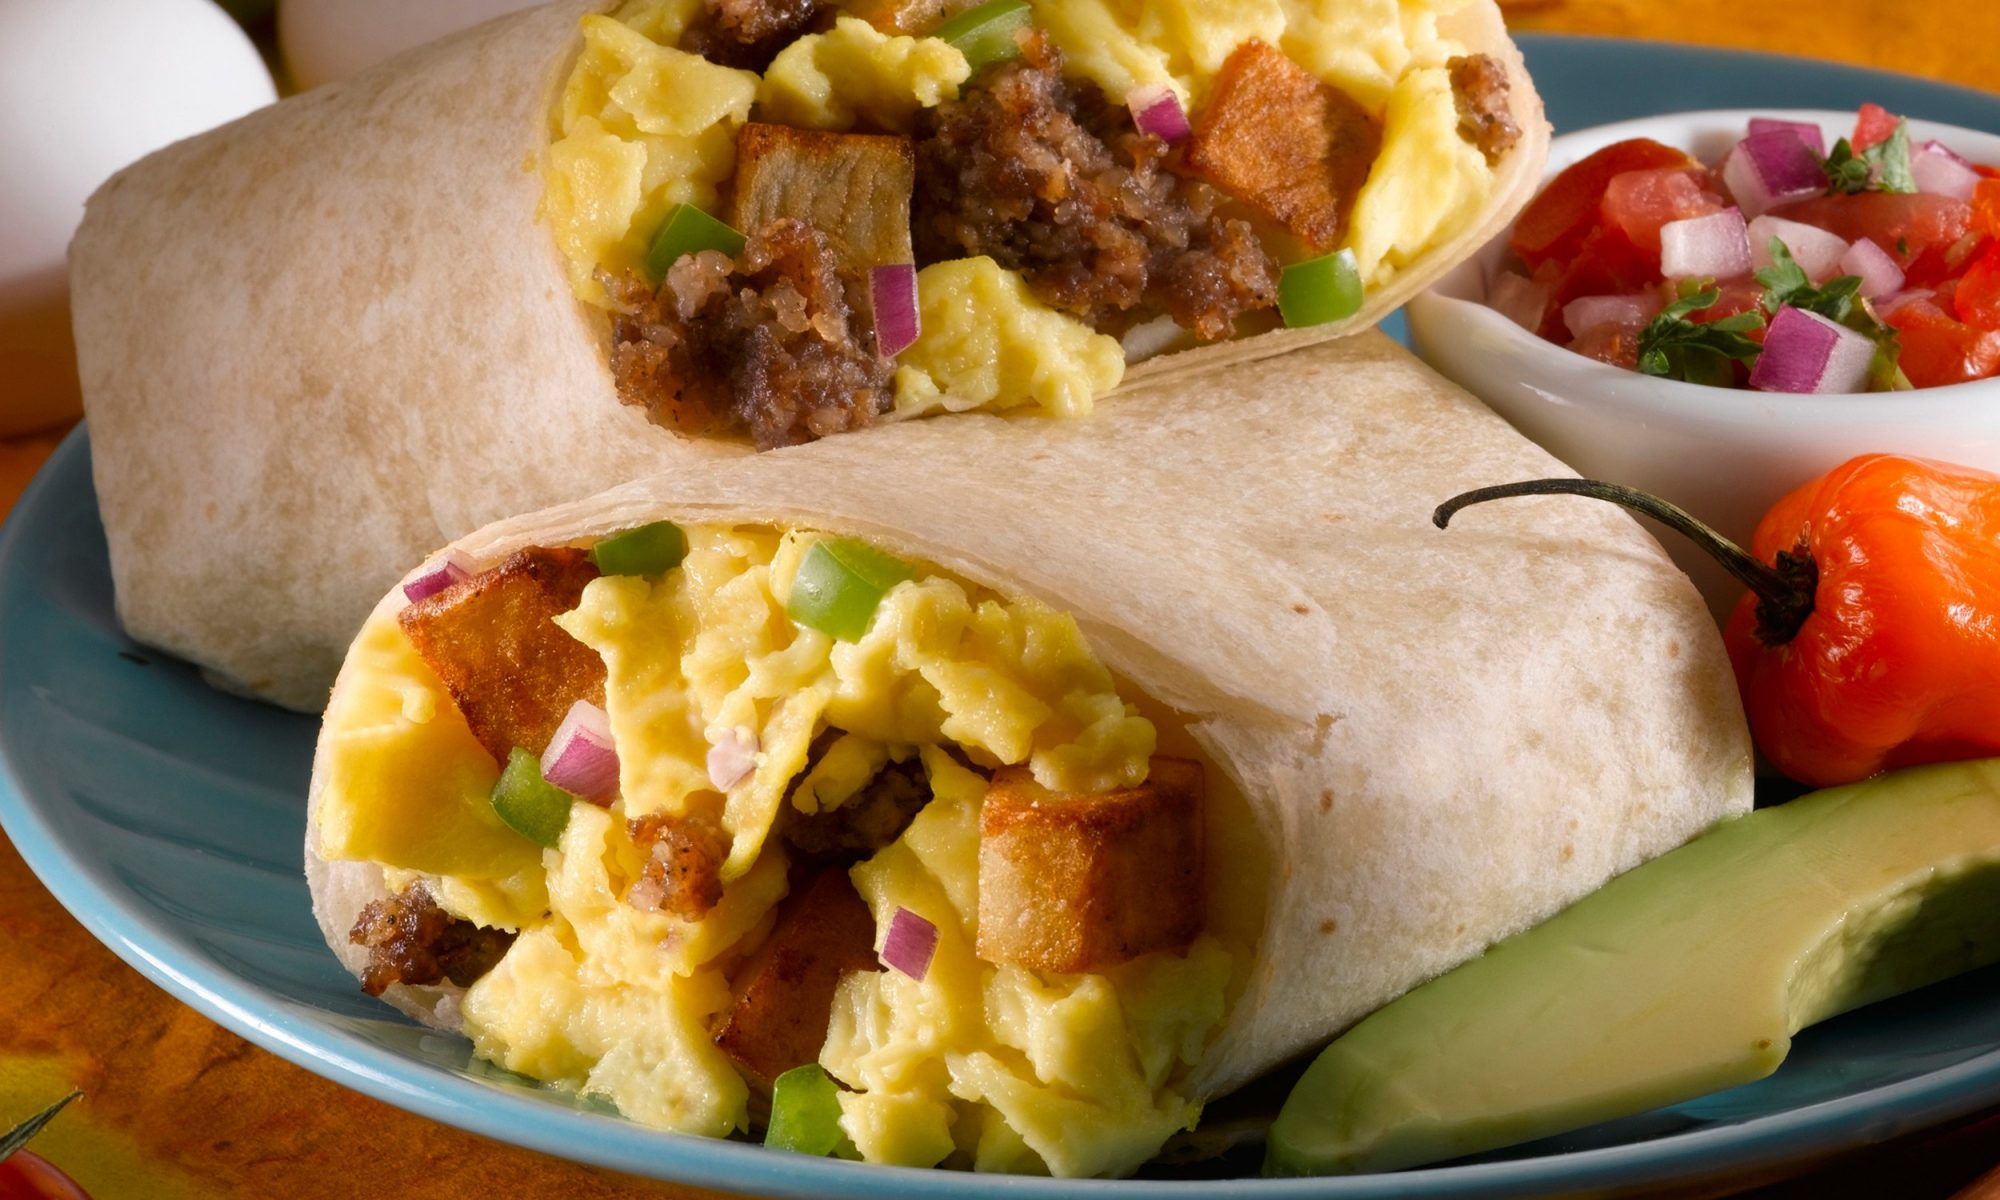 EC: Trader Joe's Just Recalled Breakfast Burritos Because There Might Be Plastic in Them